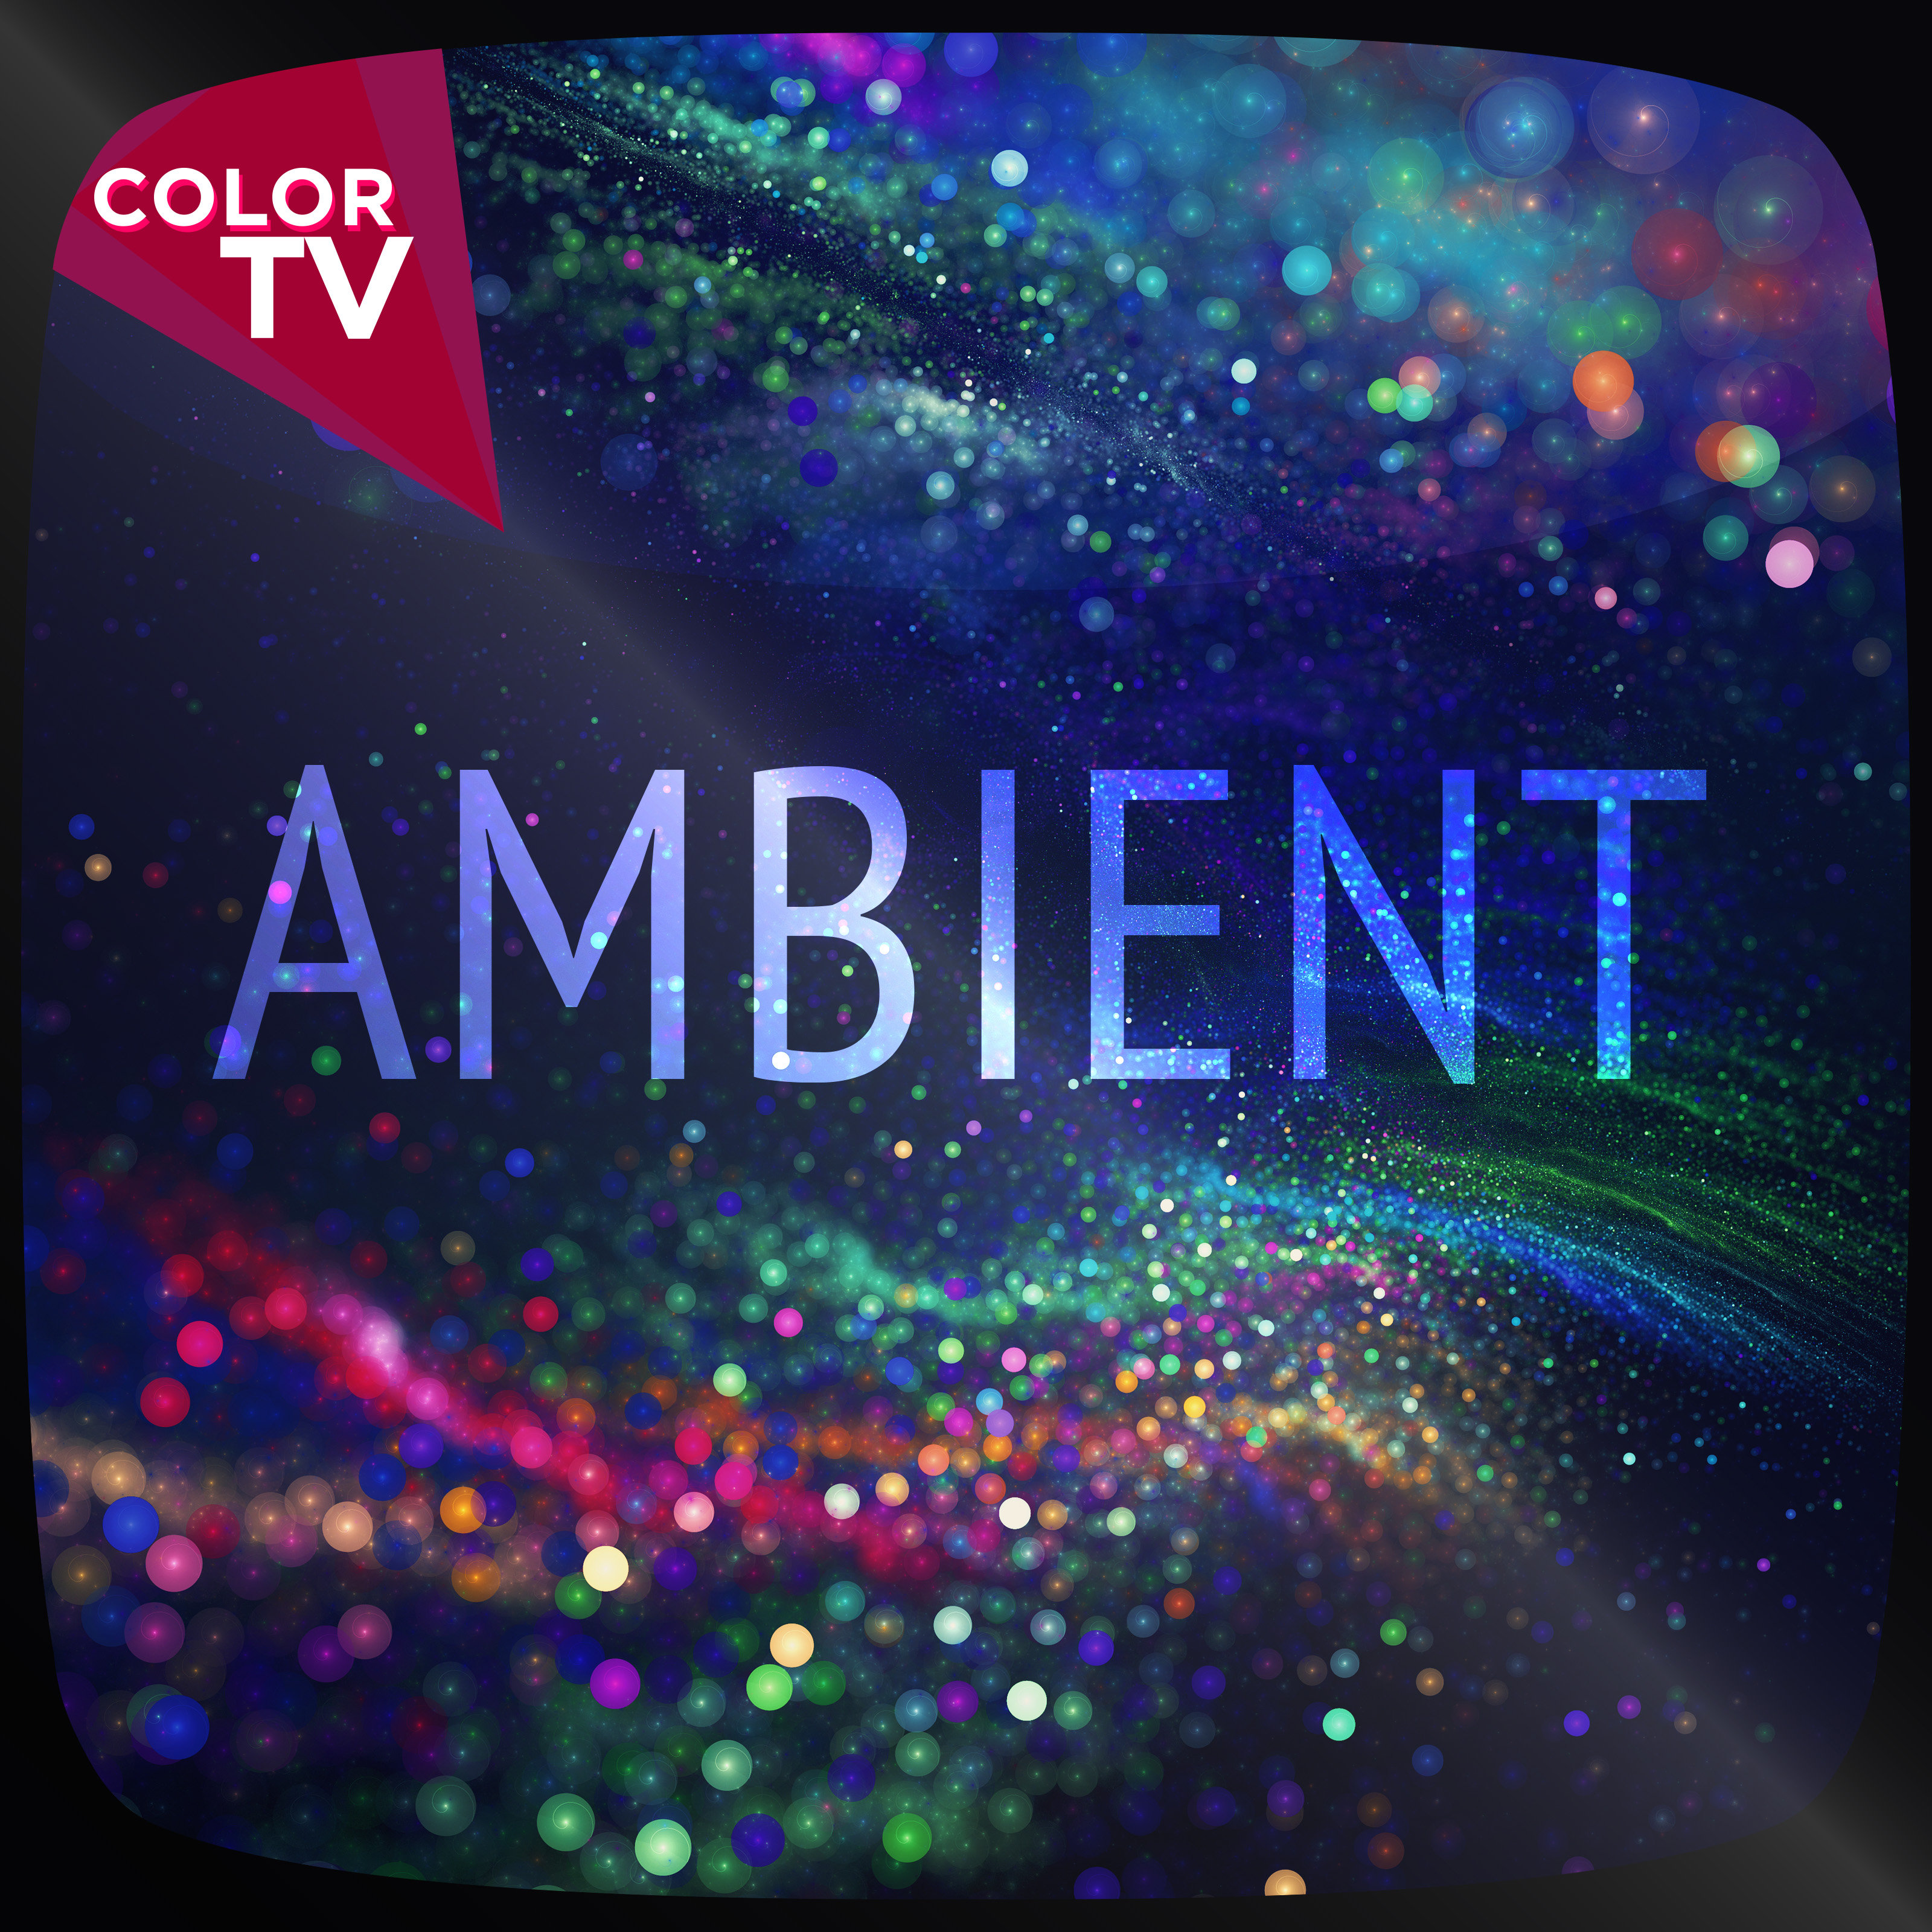 color of ambien